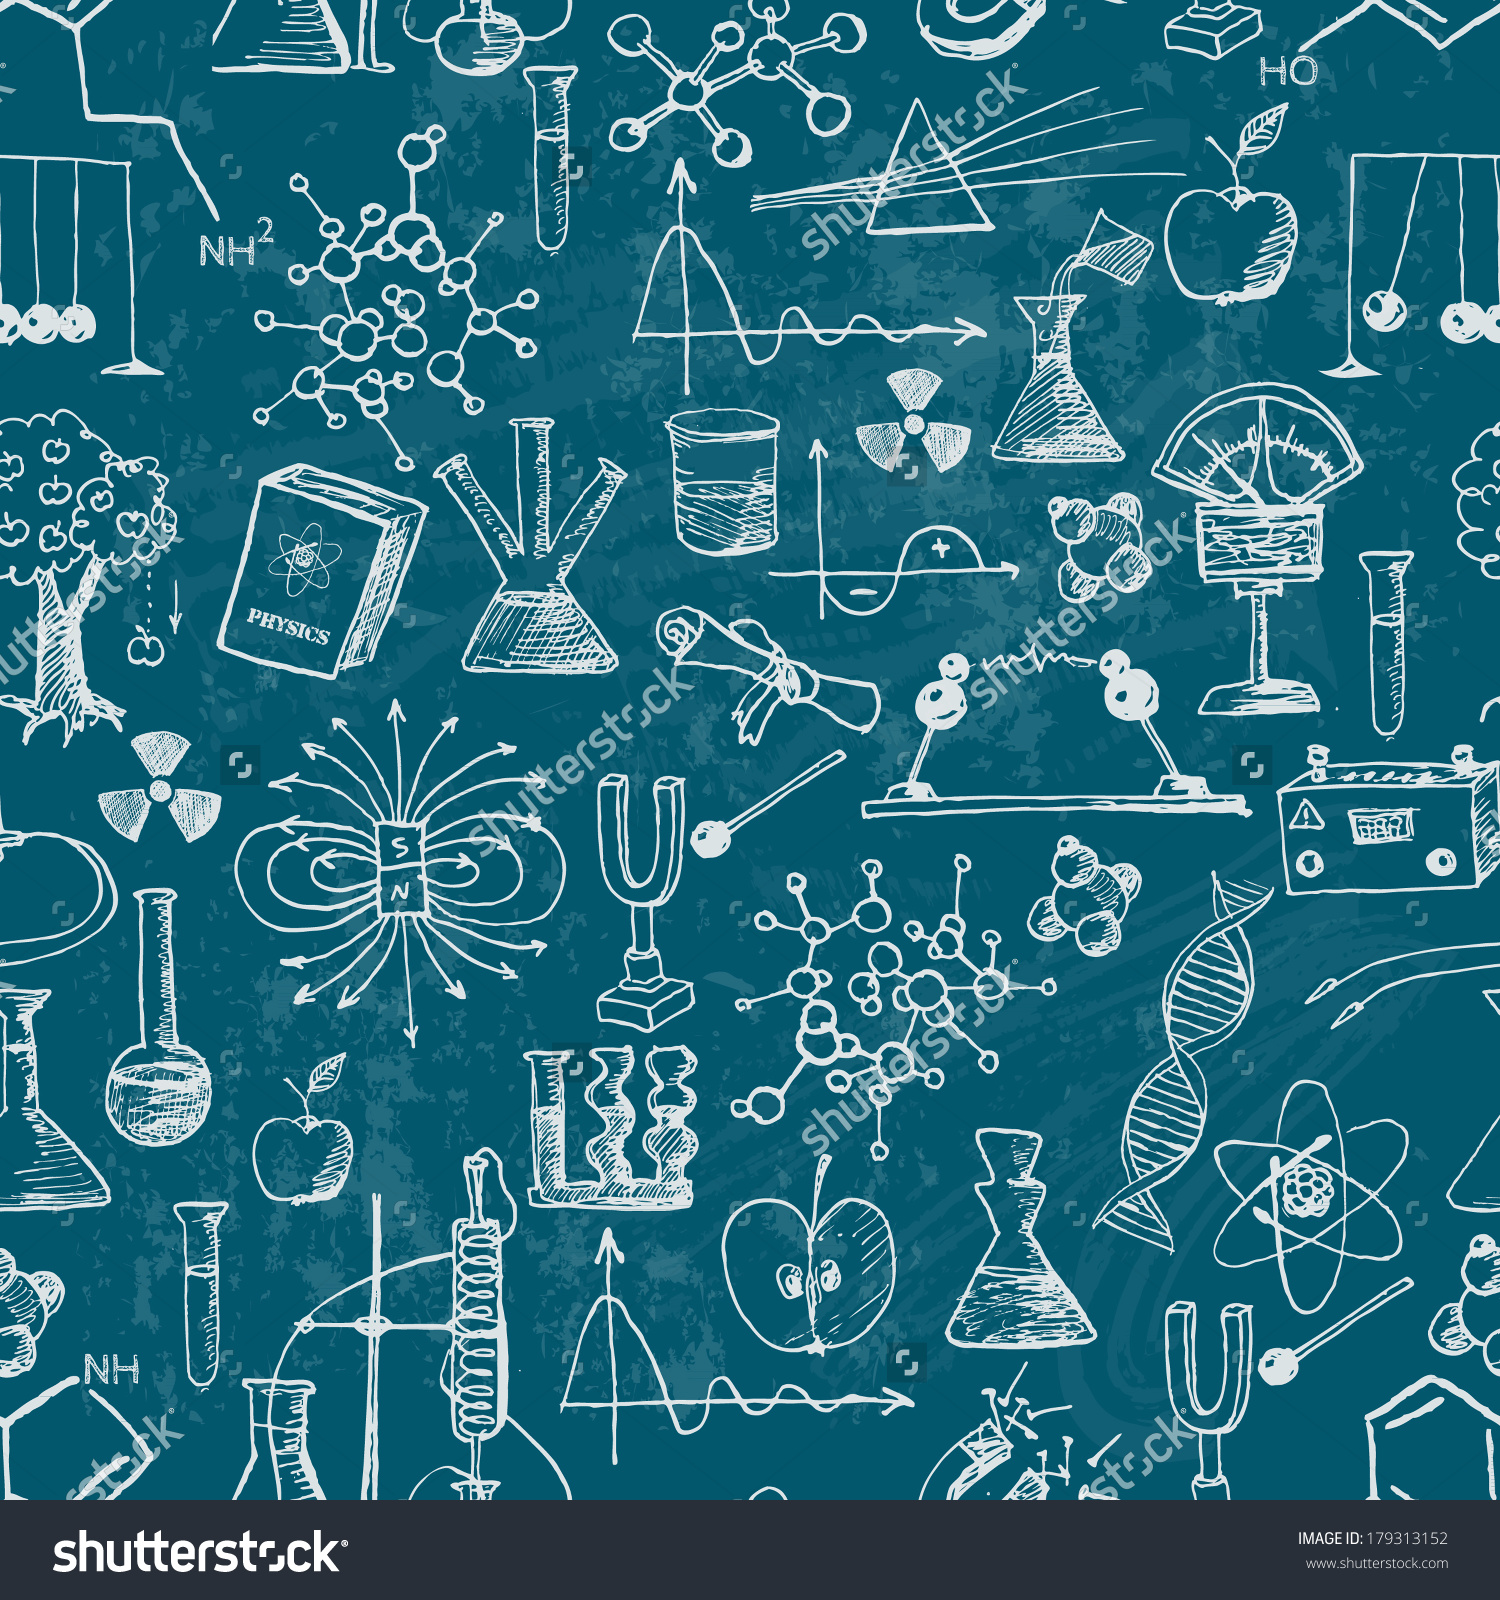 Technology Physics And Chemistry wallpapers (Desktop, Phone, Tablet ...